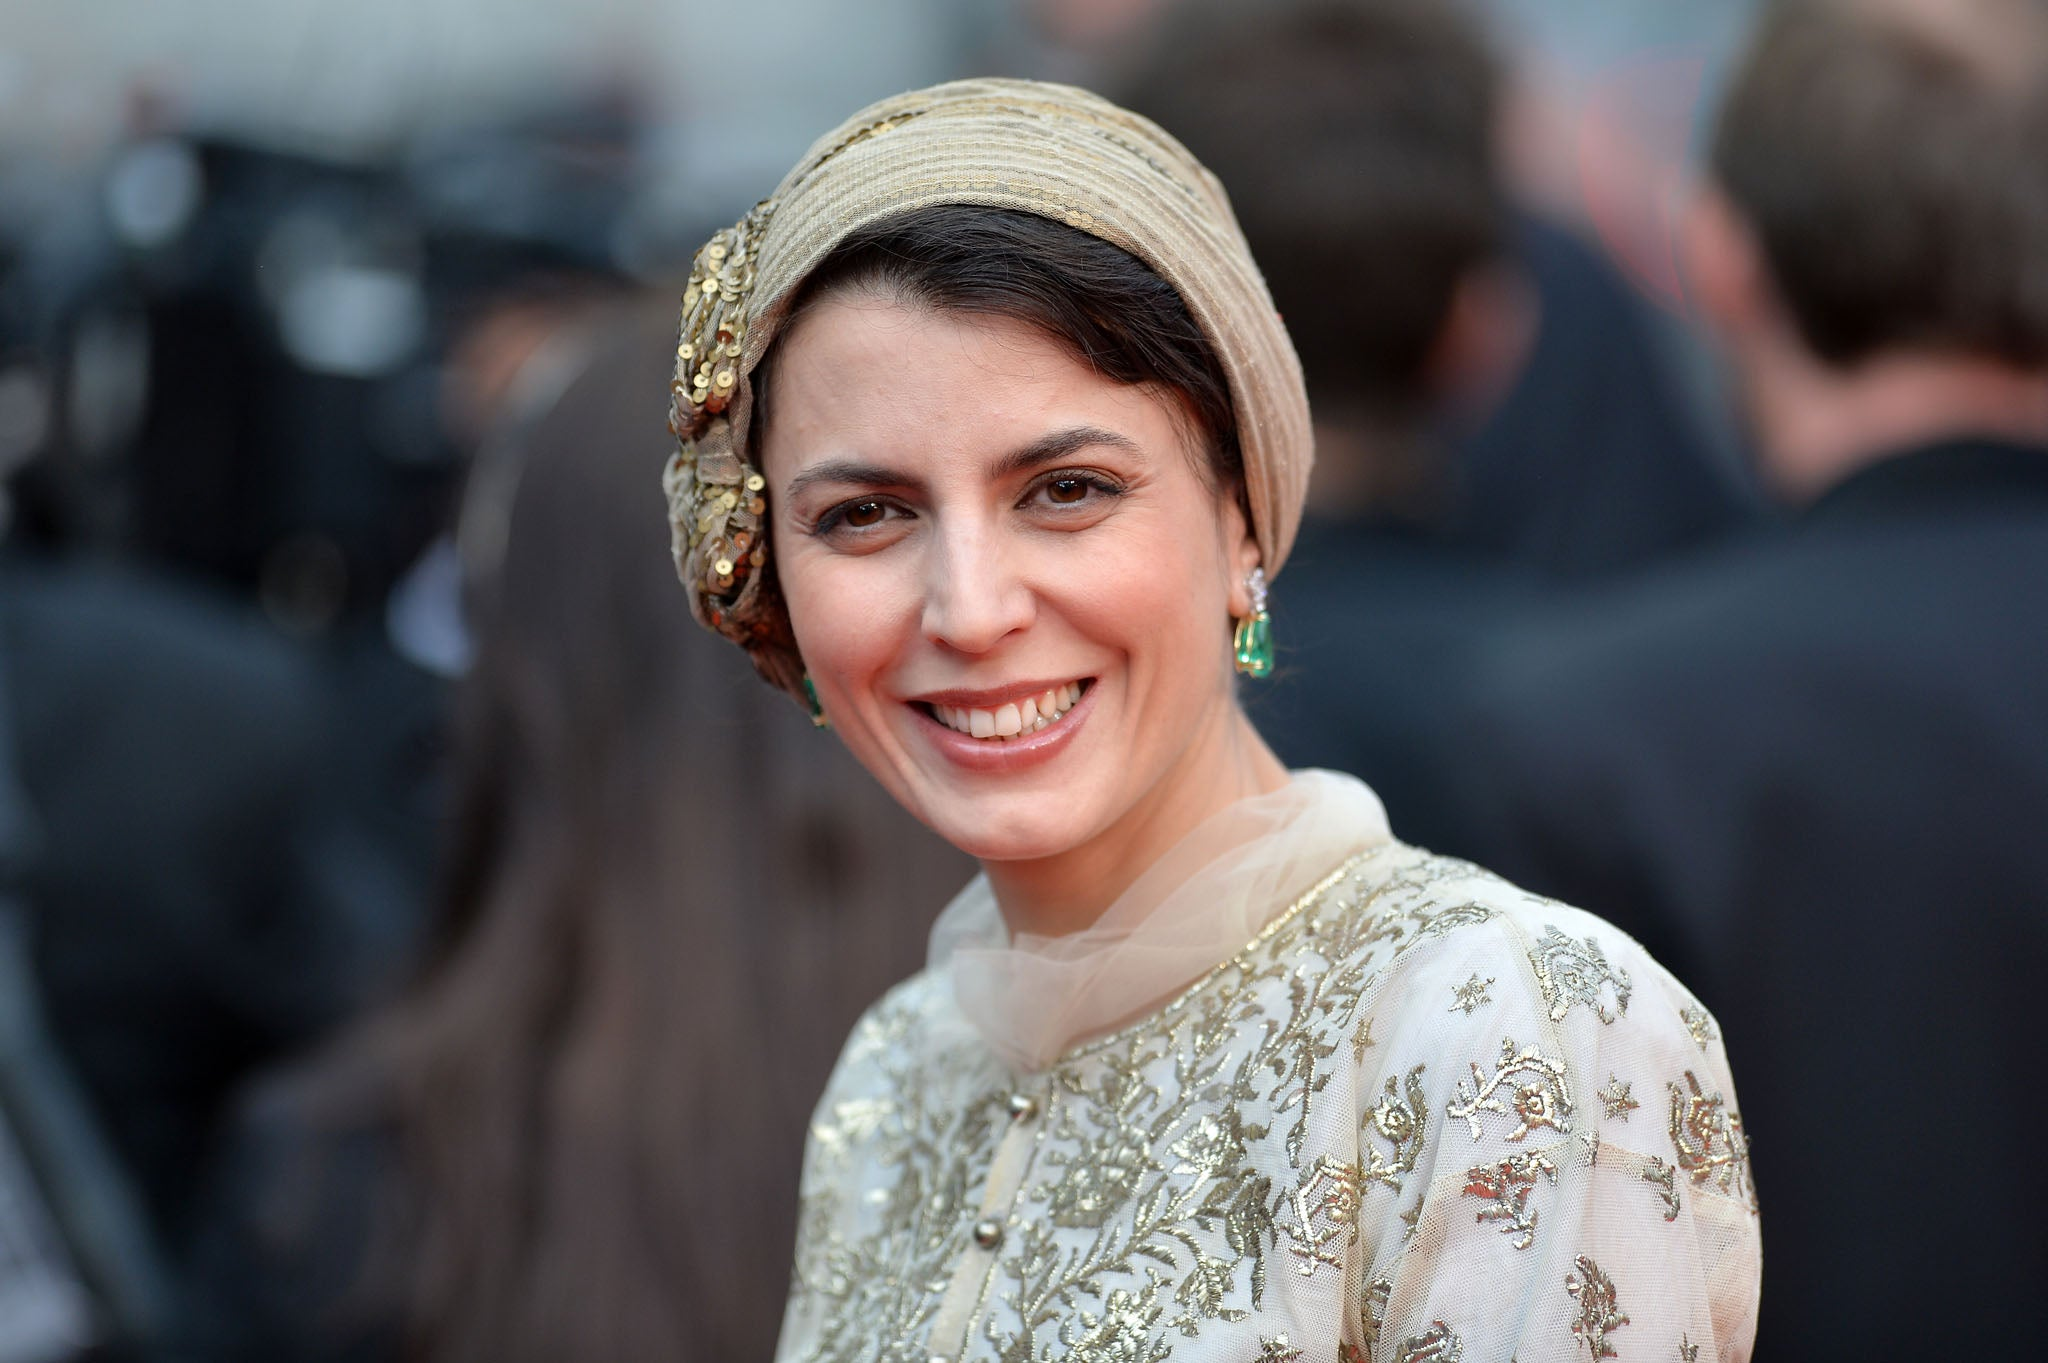 Leila Hatami nudes (94 photos), Topless, Fappening, Boobs, braless 2020